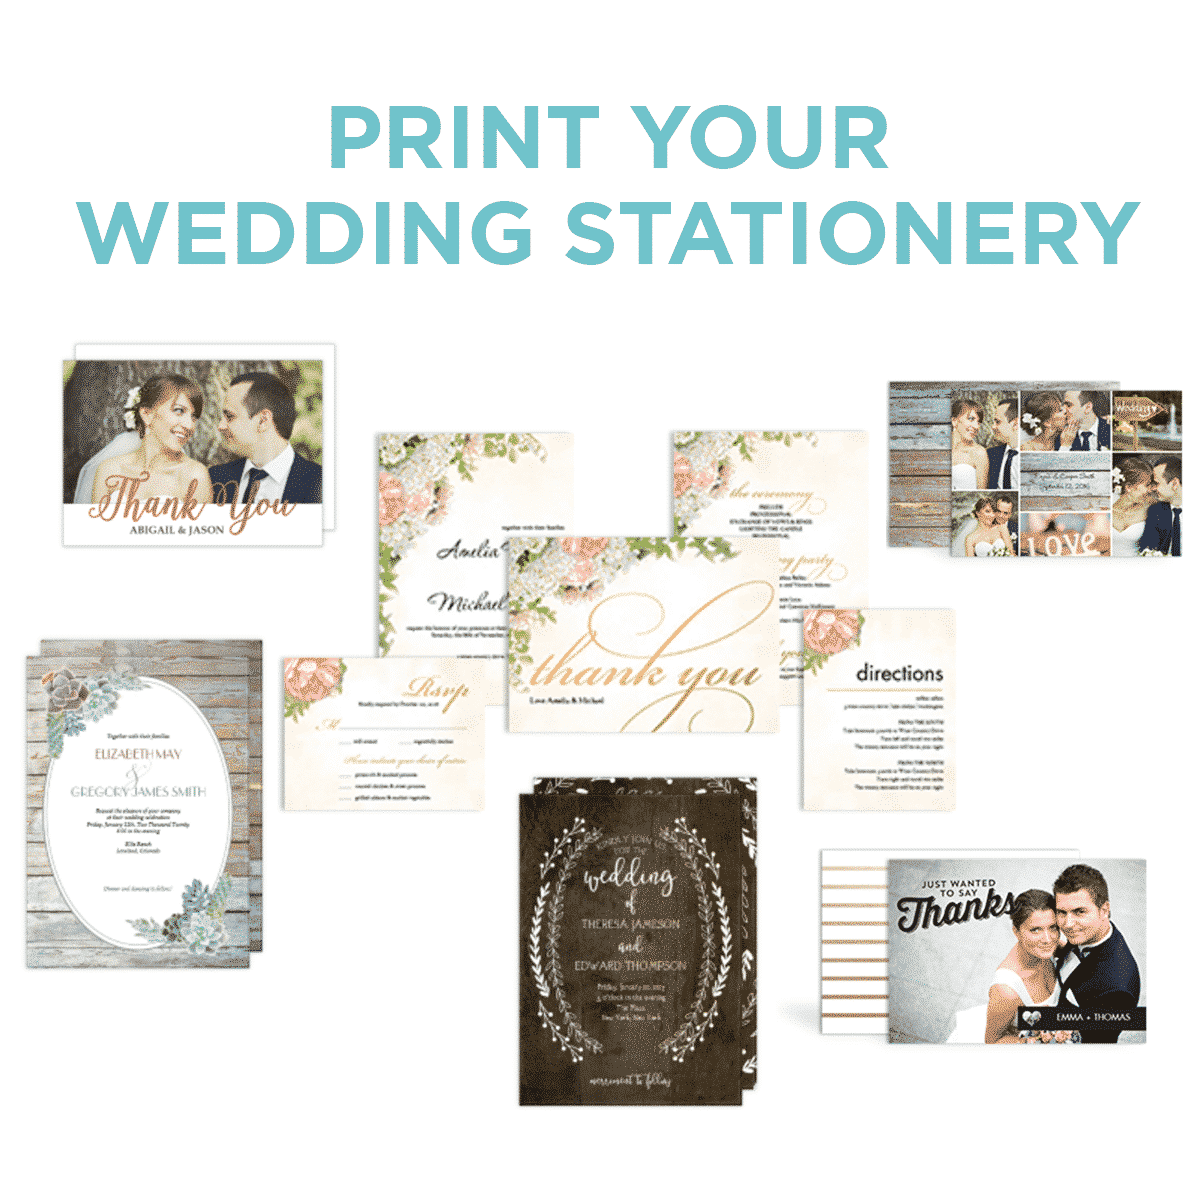 Print Your Wedding Stationery at Sam's Club